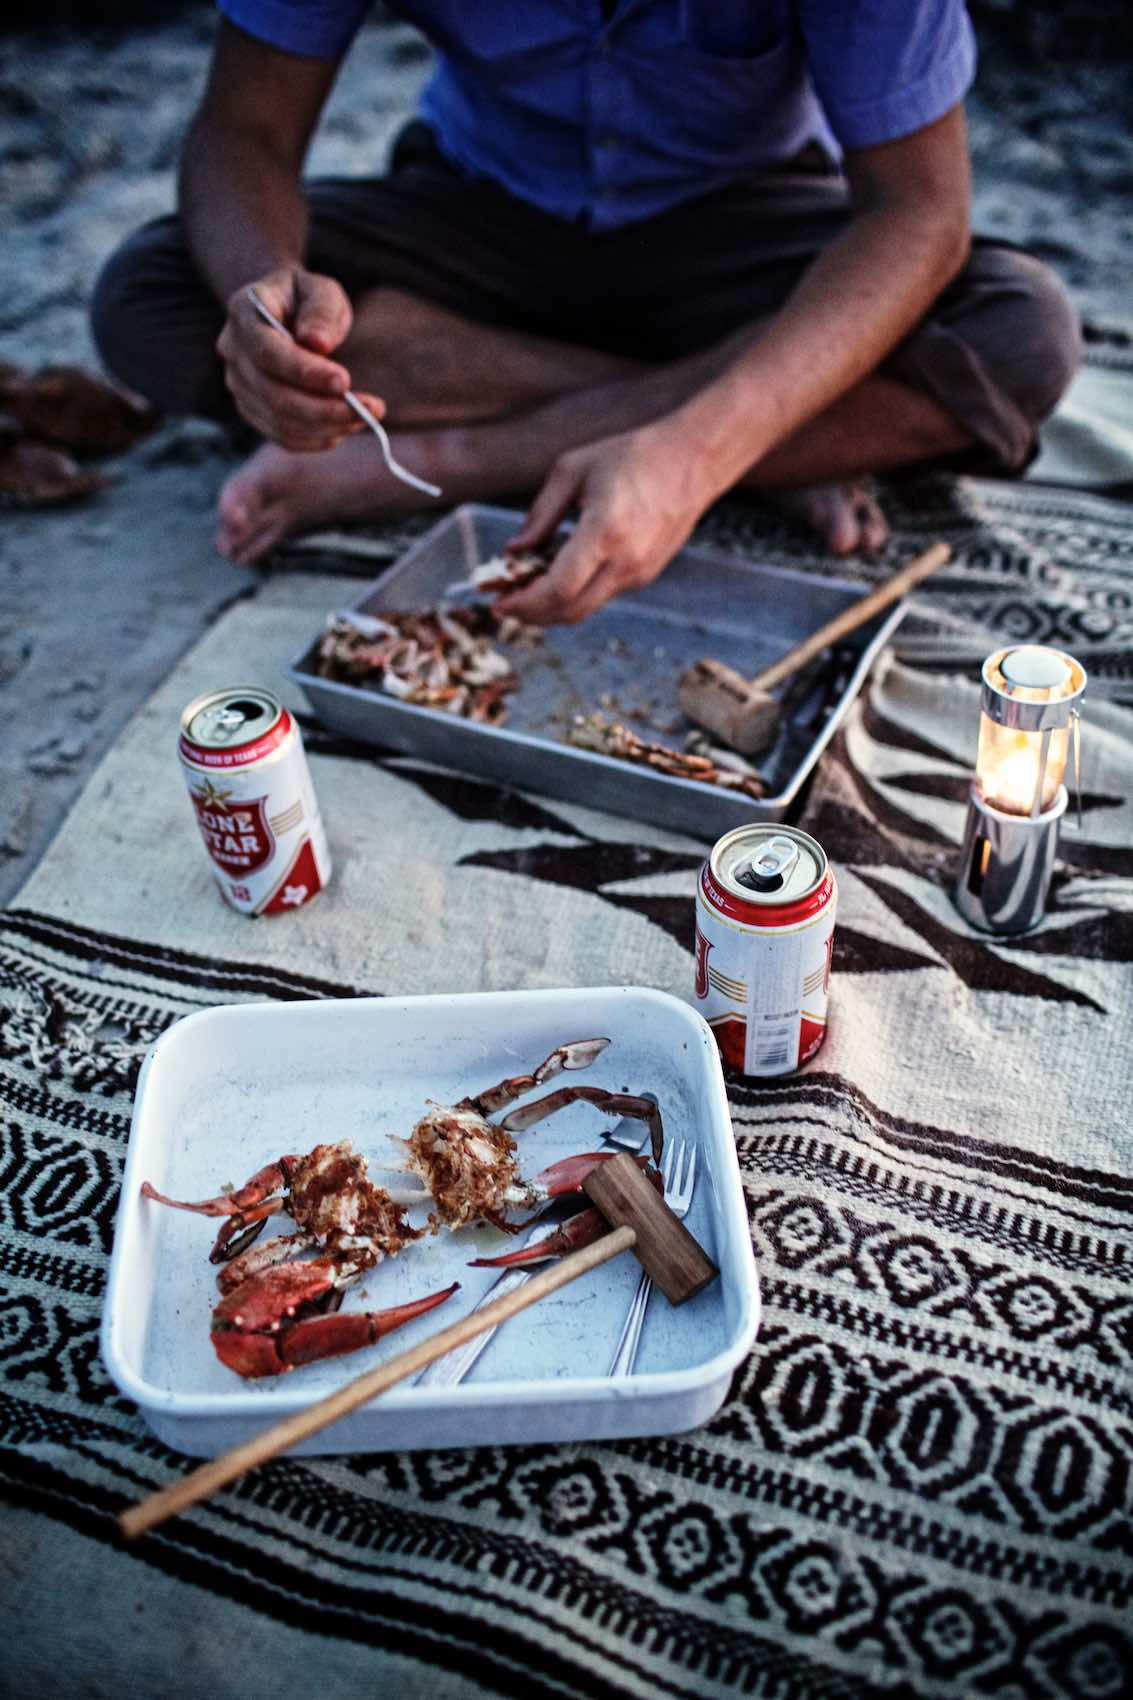 Jody Horton Photography - Grilled crab and canned Lonestar Beers on a beach blanket.